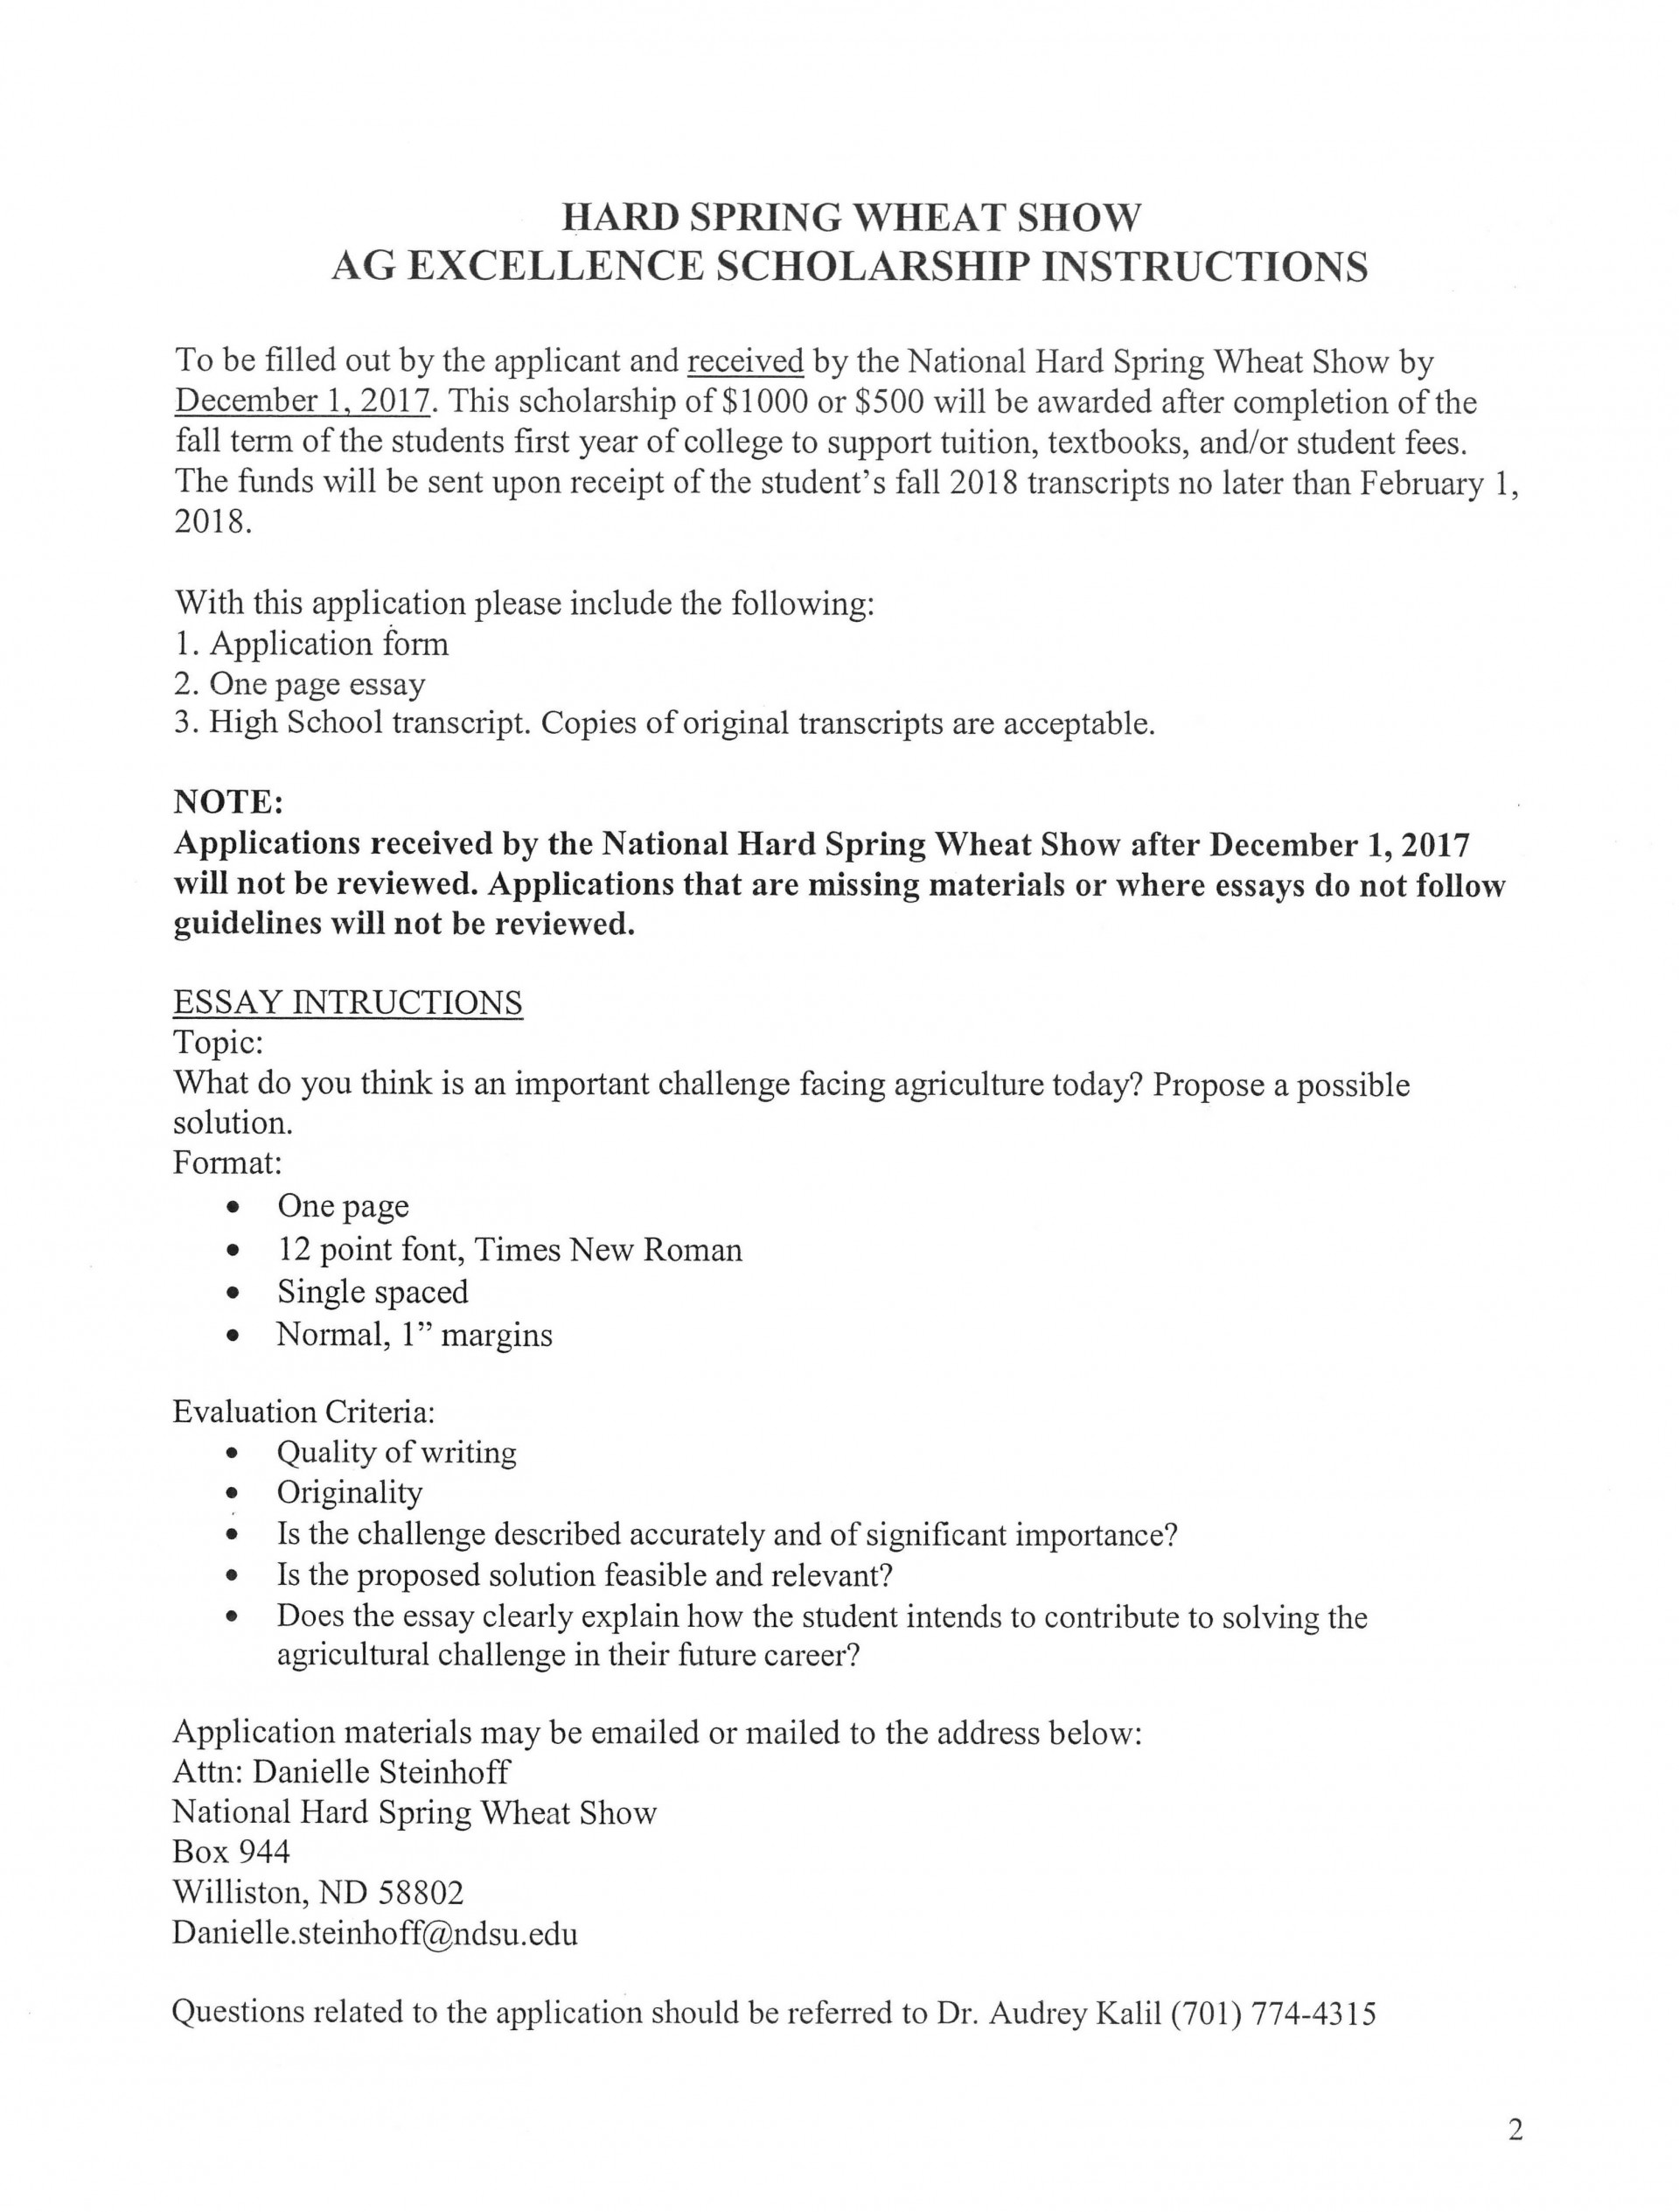 009 Page 2 Essay Example Scholarships That Don T Require Remarkable Essays Are There Any Don't 2019 Canadian 1920